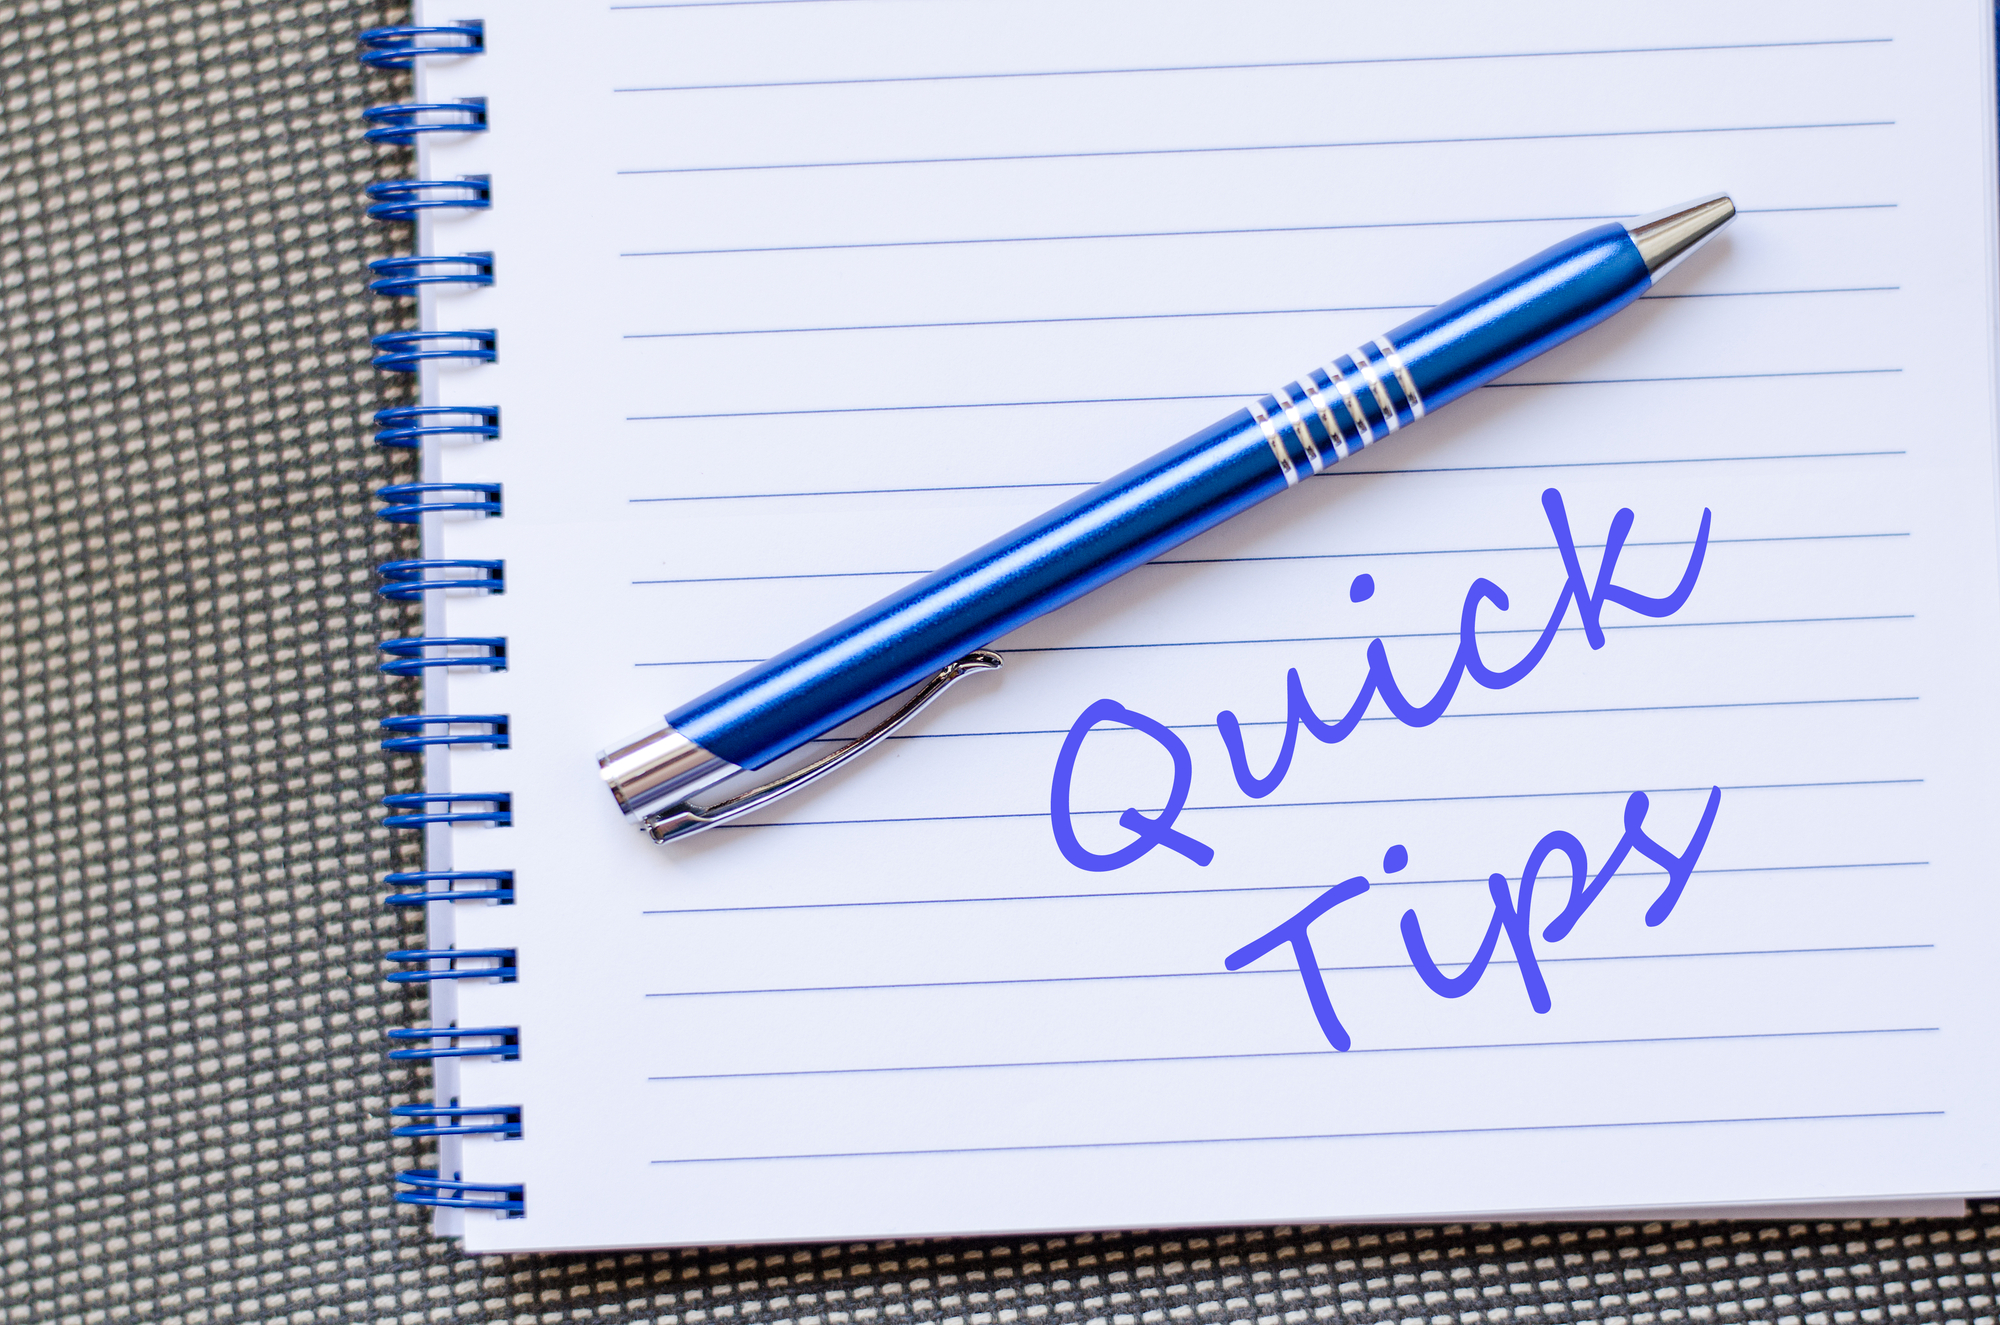 Quick Tips words written on a notepad.